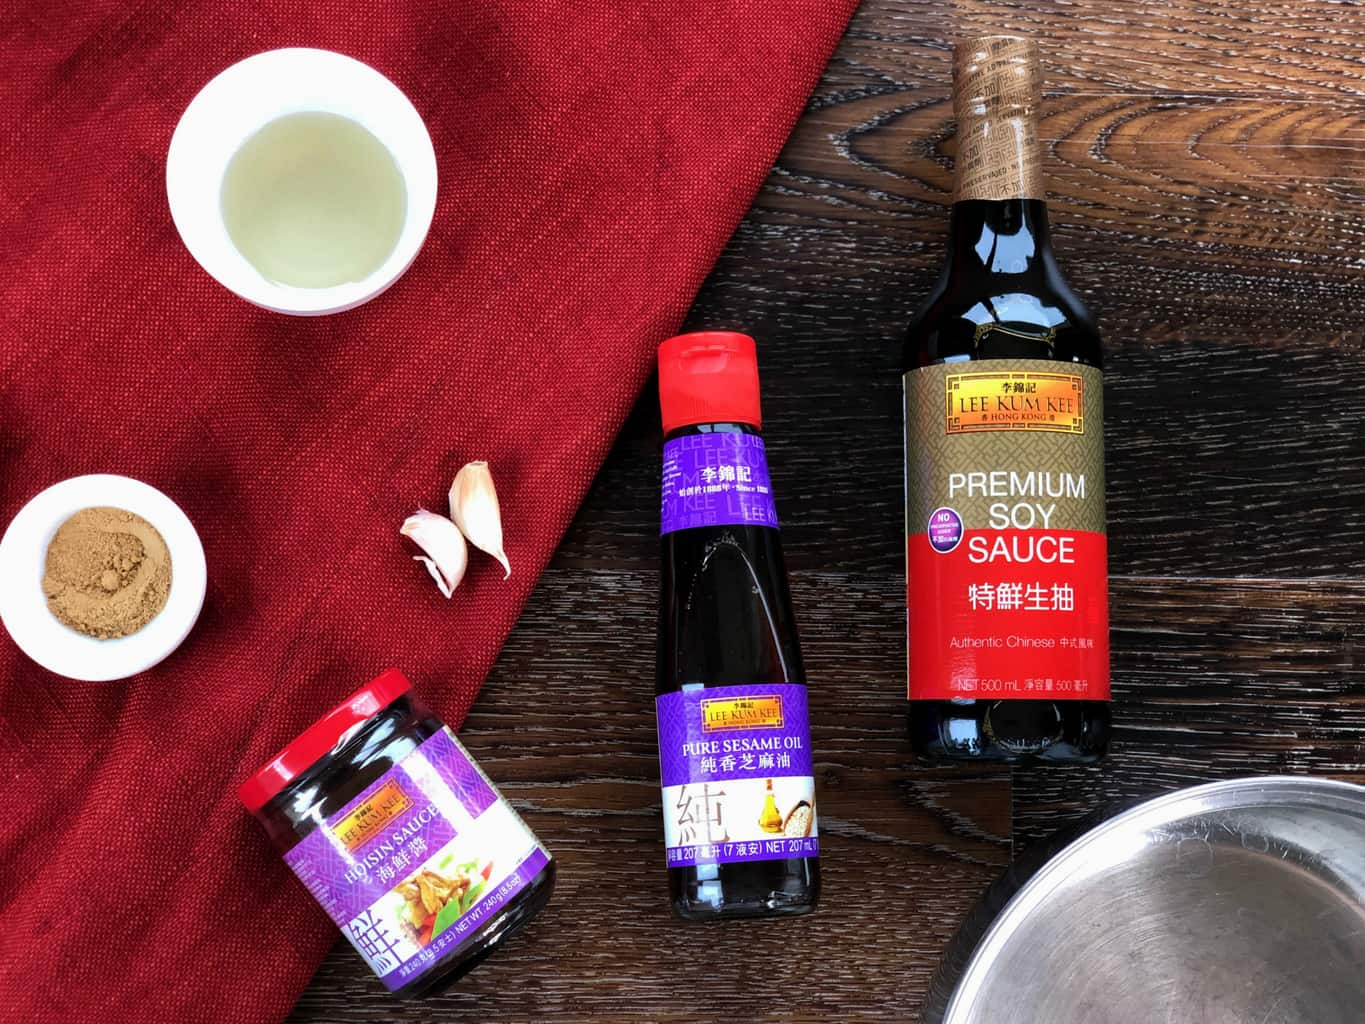 Ingredients for the best Sticky Asian Sauce